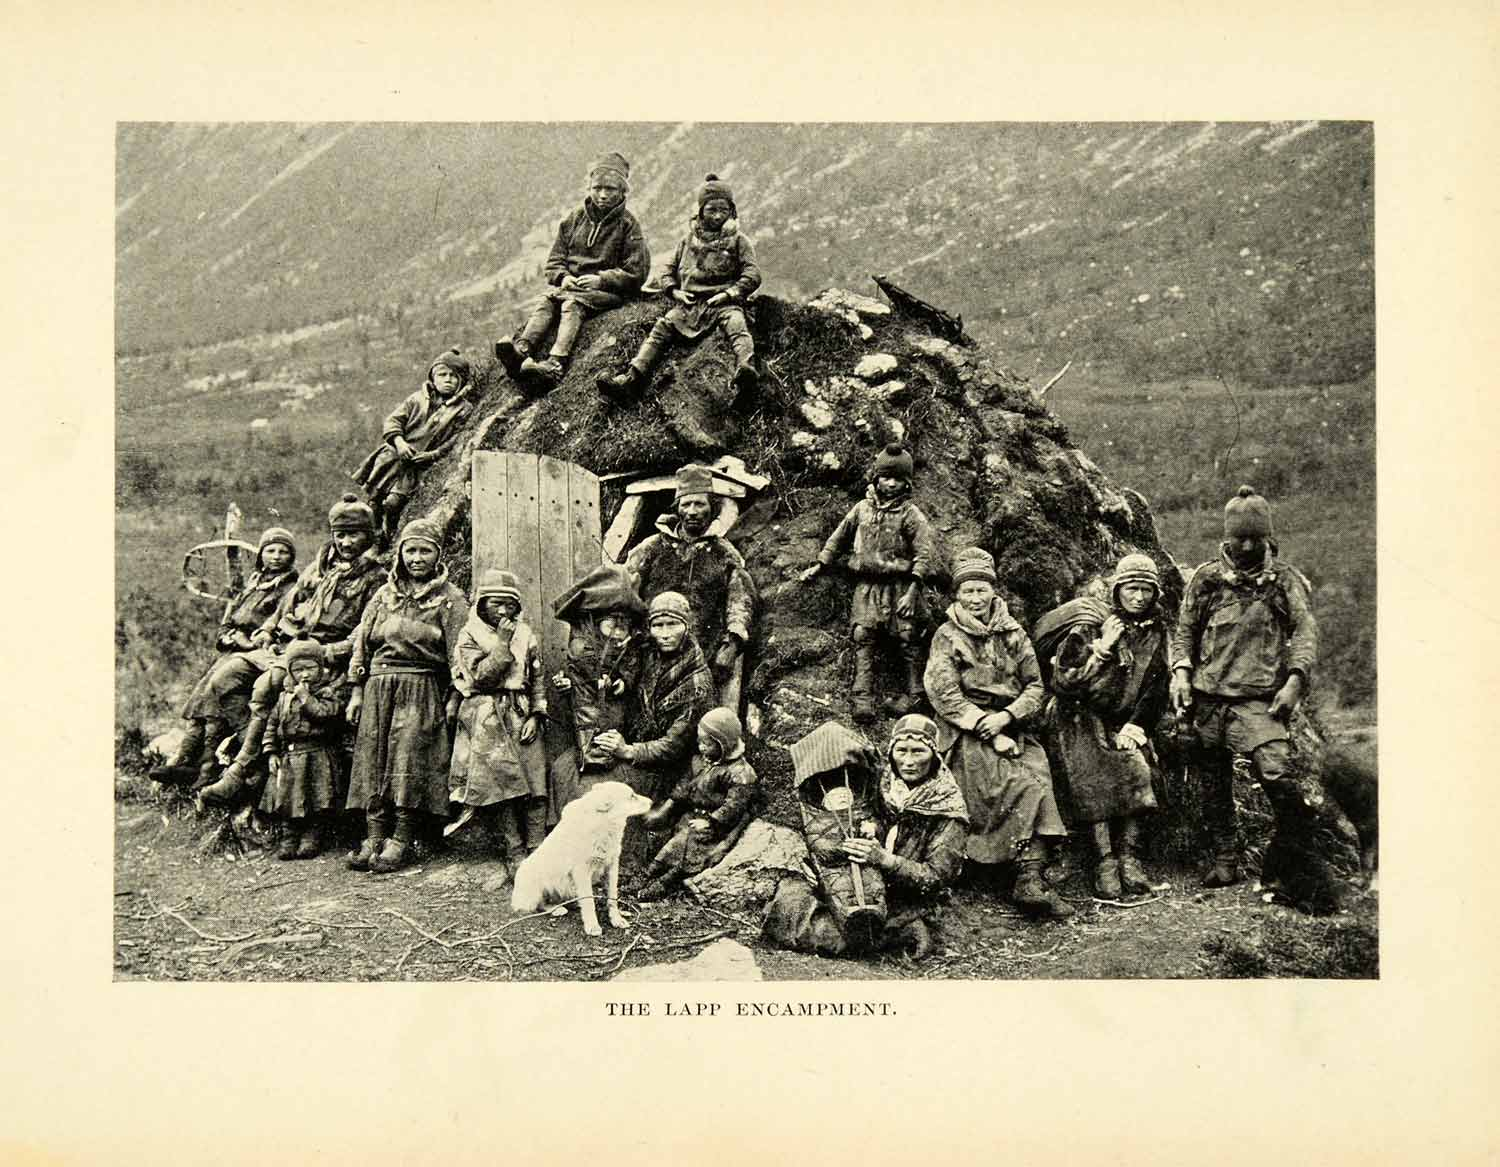 1896 Halftone Print Laplander Norway Encampment Hut Natives Historic Image XGH3